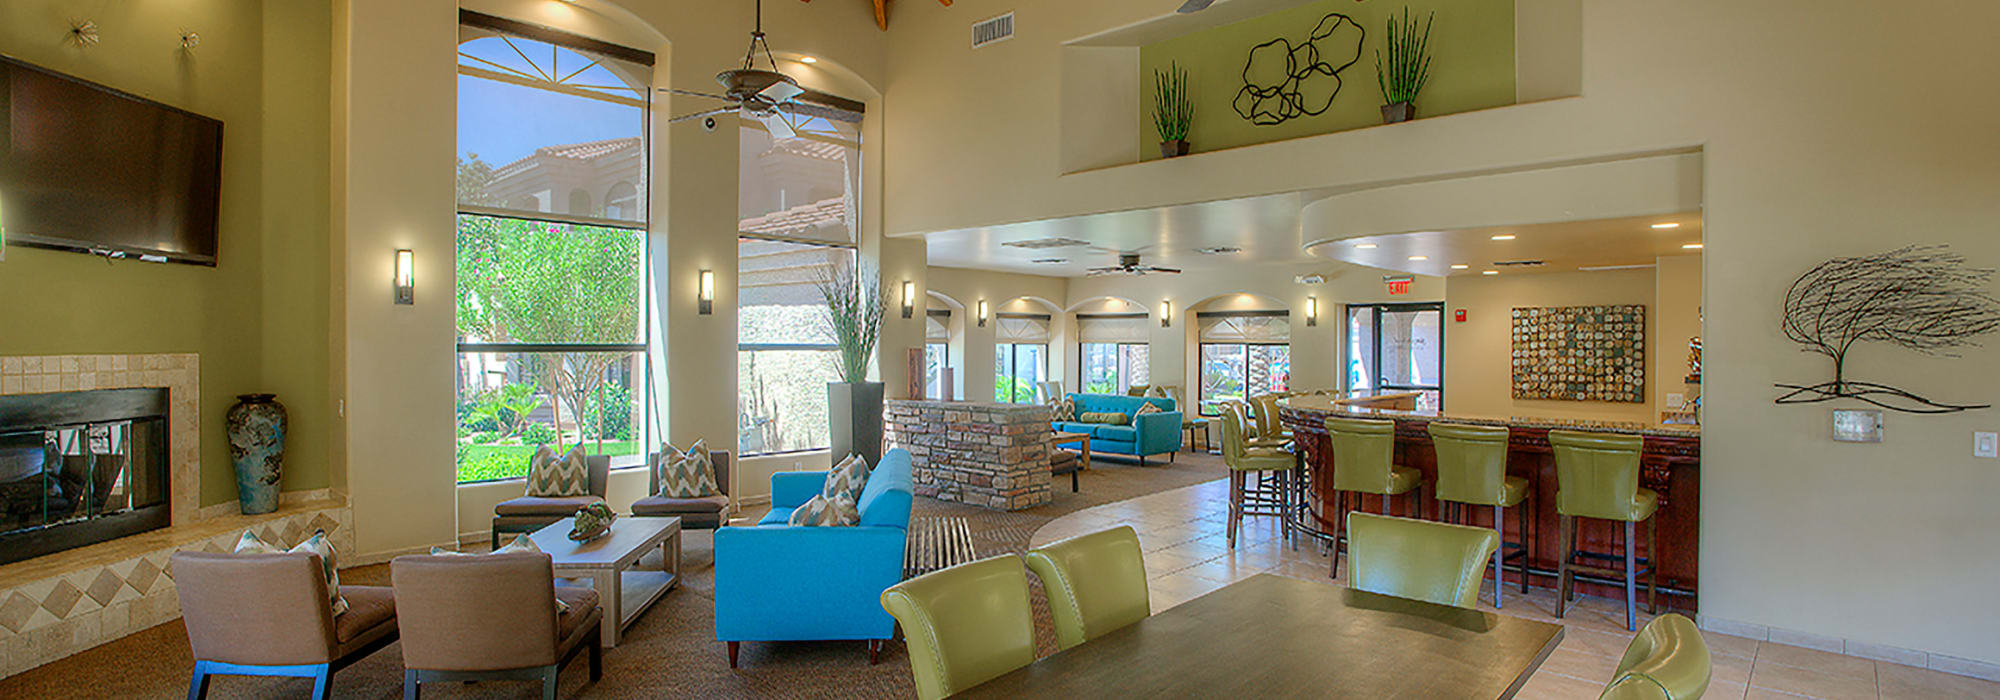 Luxurious resident clubhouse interior at San Pedregal in Phoenix, Arizona